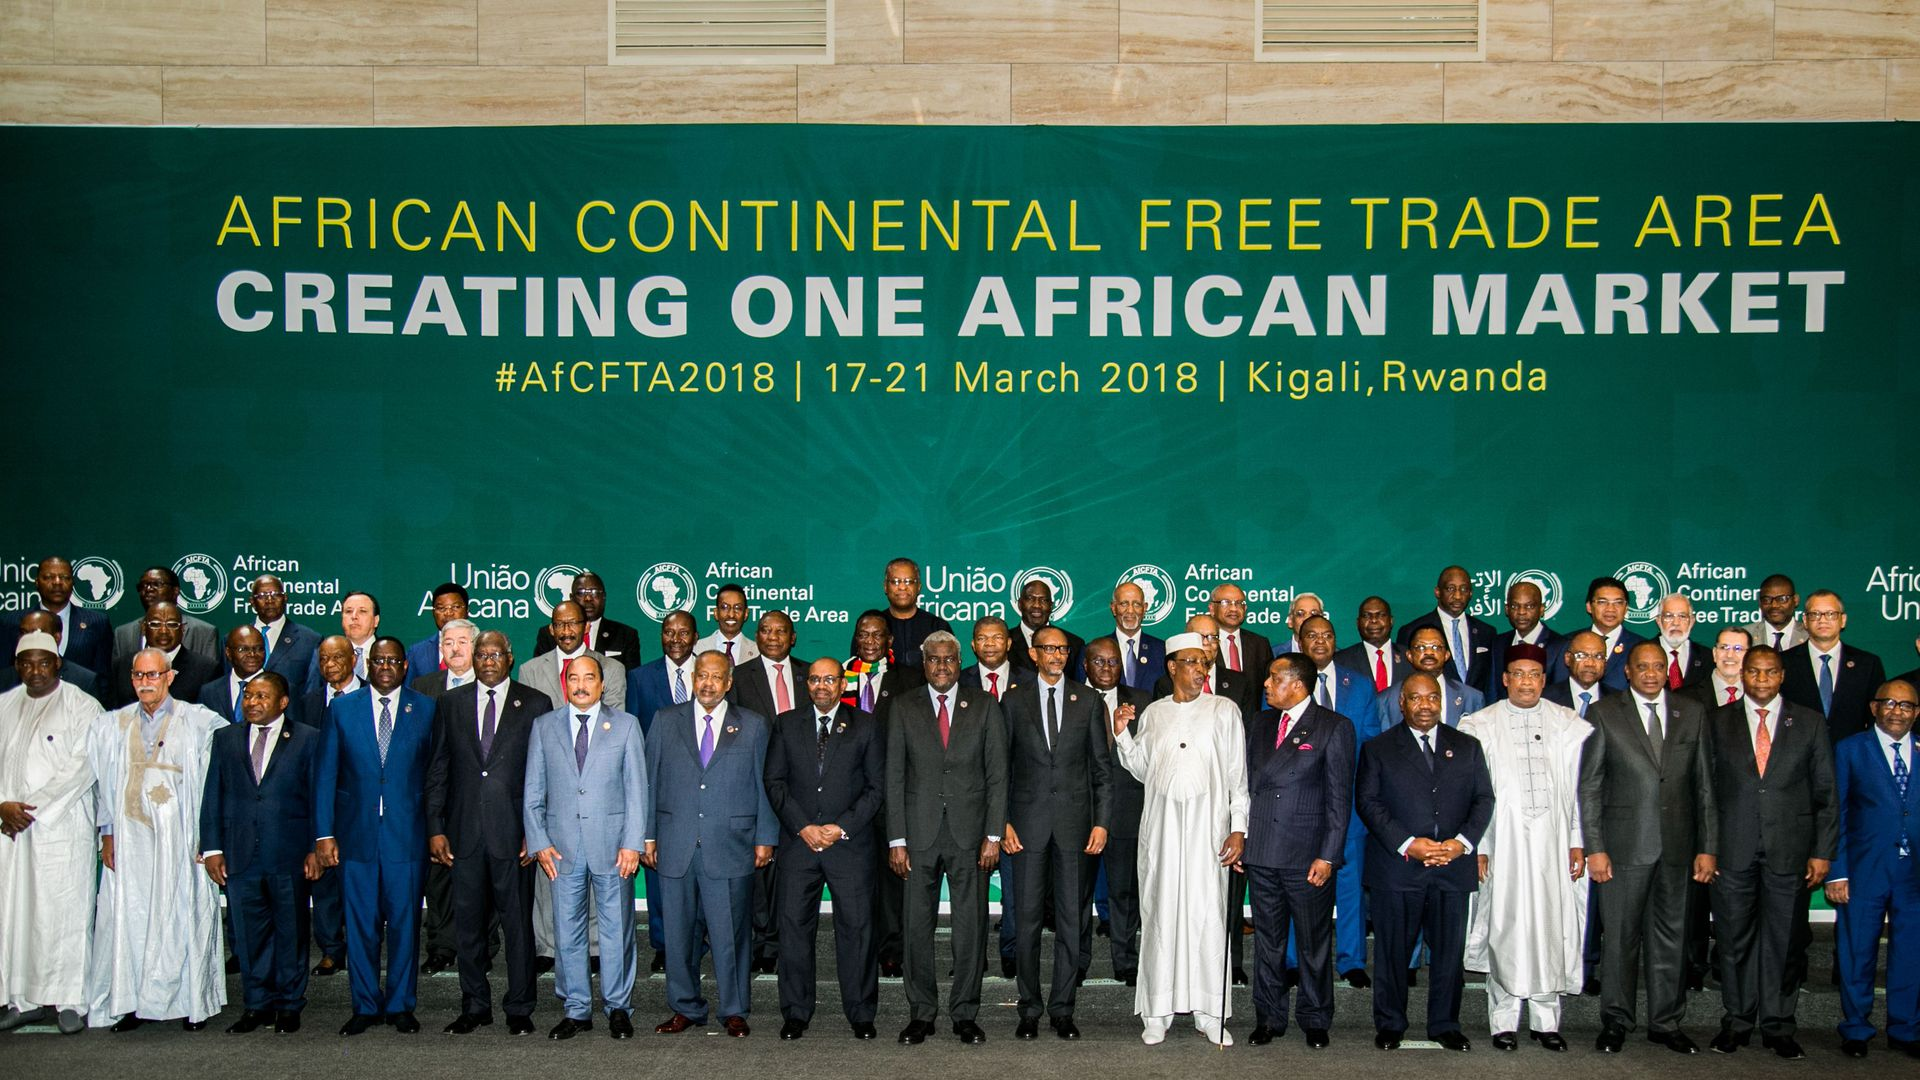 The African Heads of States and Governments pose during African Union (AU) Summit for the agreement to establish the African Continental Free Trade Area in Kigali, Rwanda, on March 21, 2018.